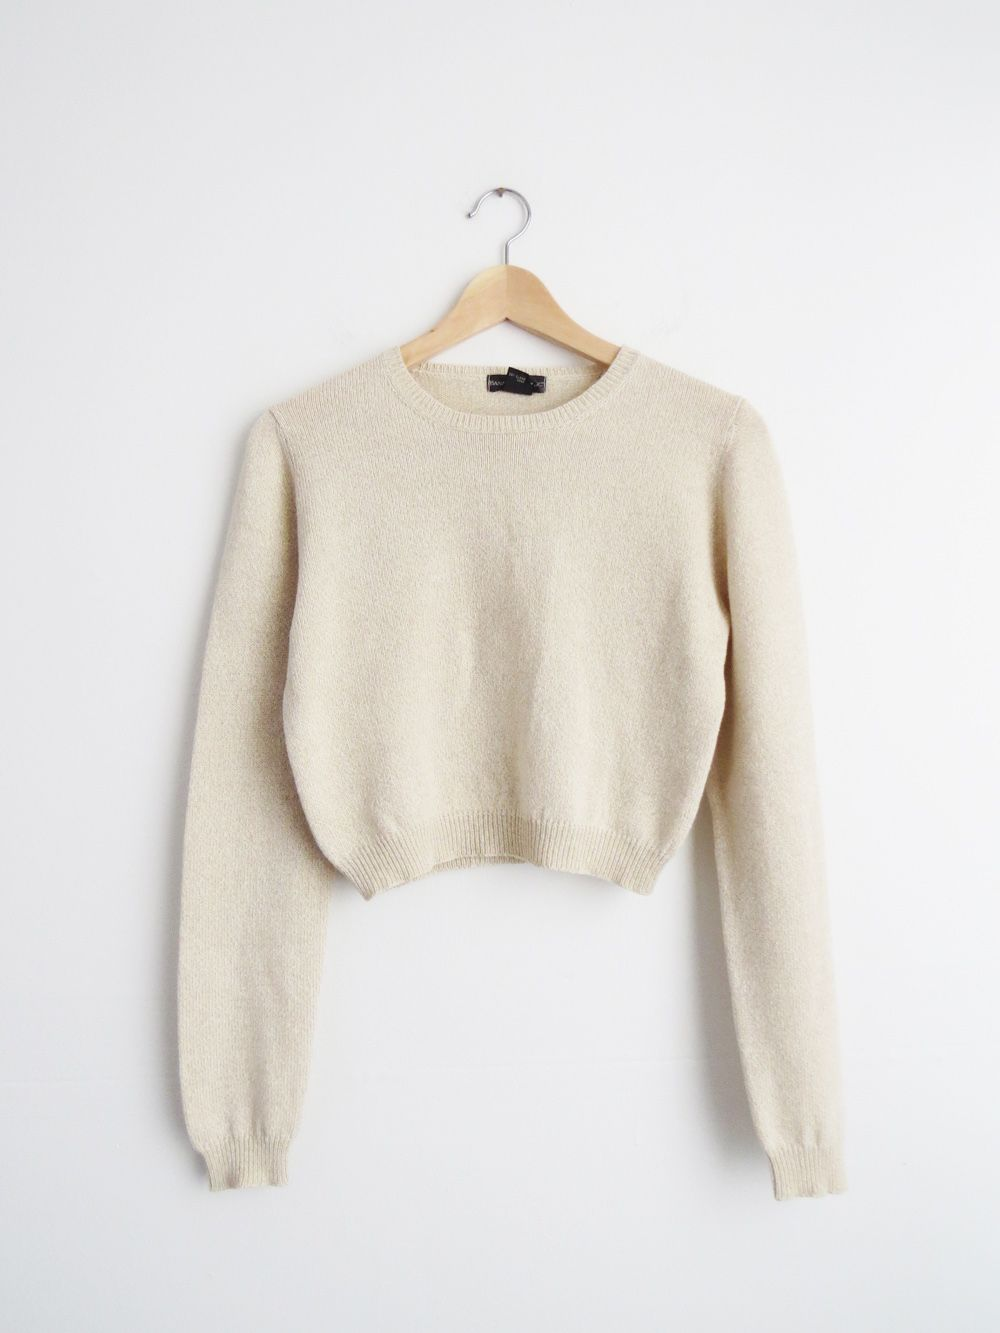 Silk Blend Cropped Knit // 90's Minimalist Top SOLD